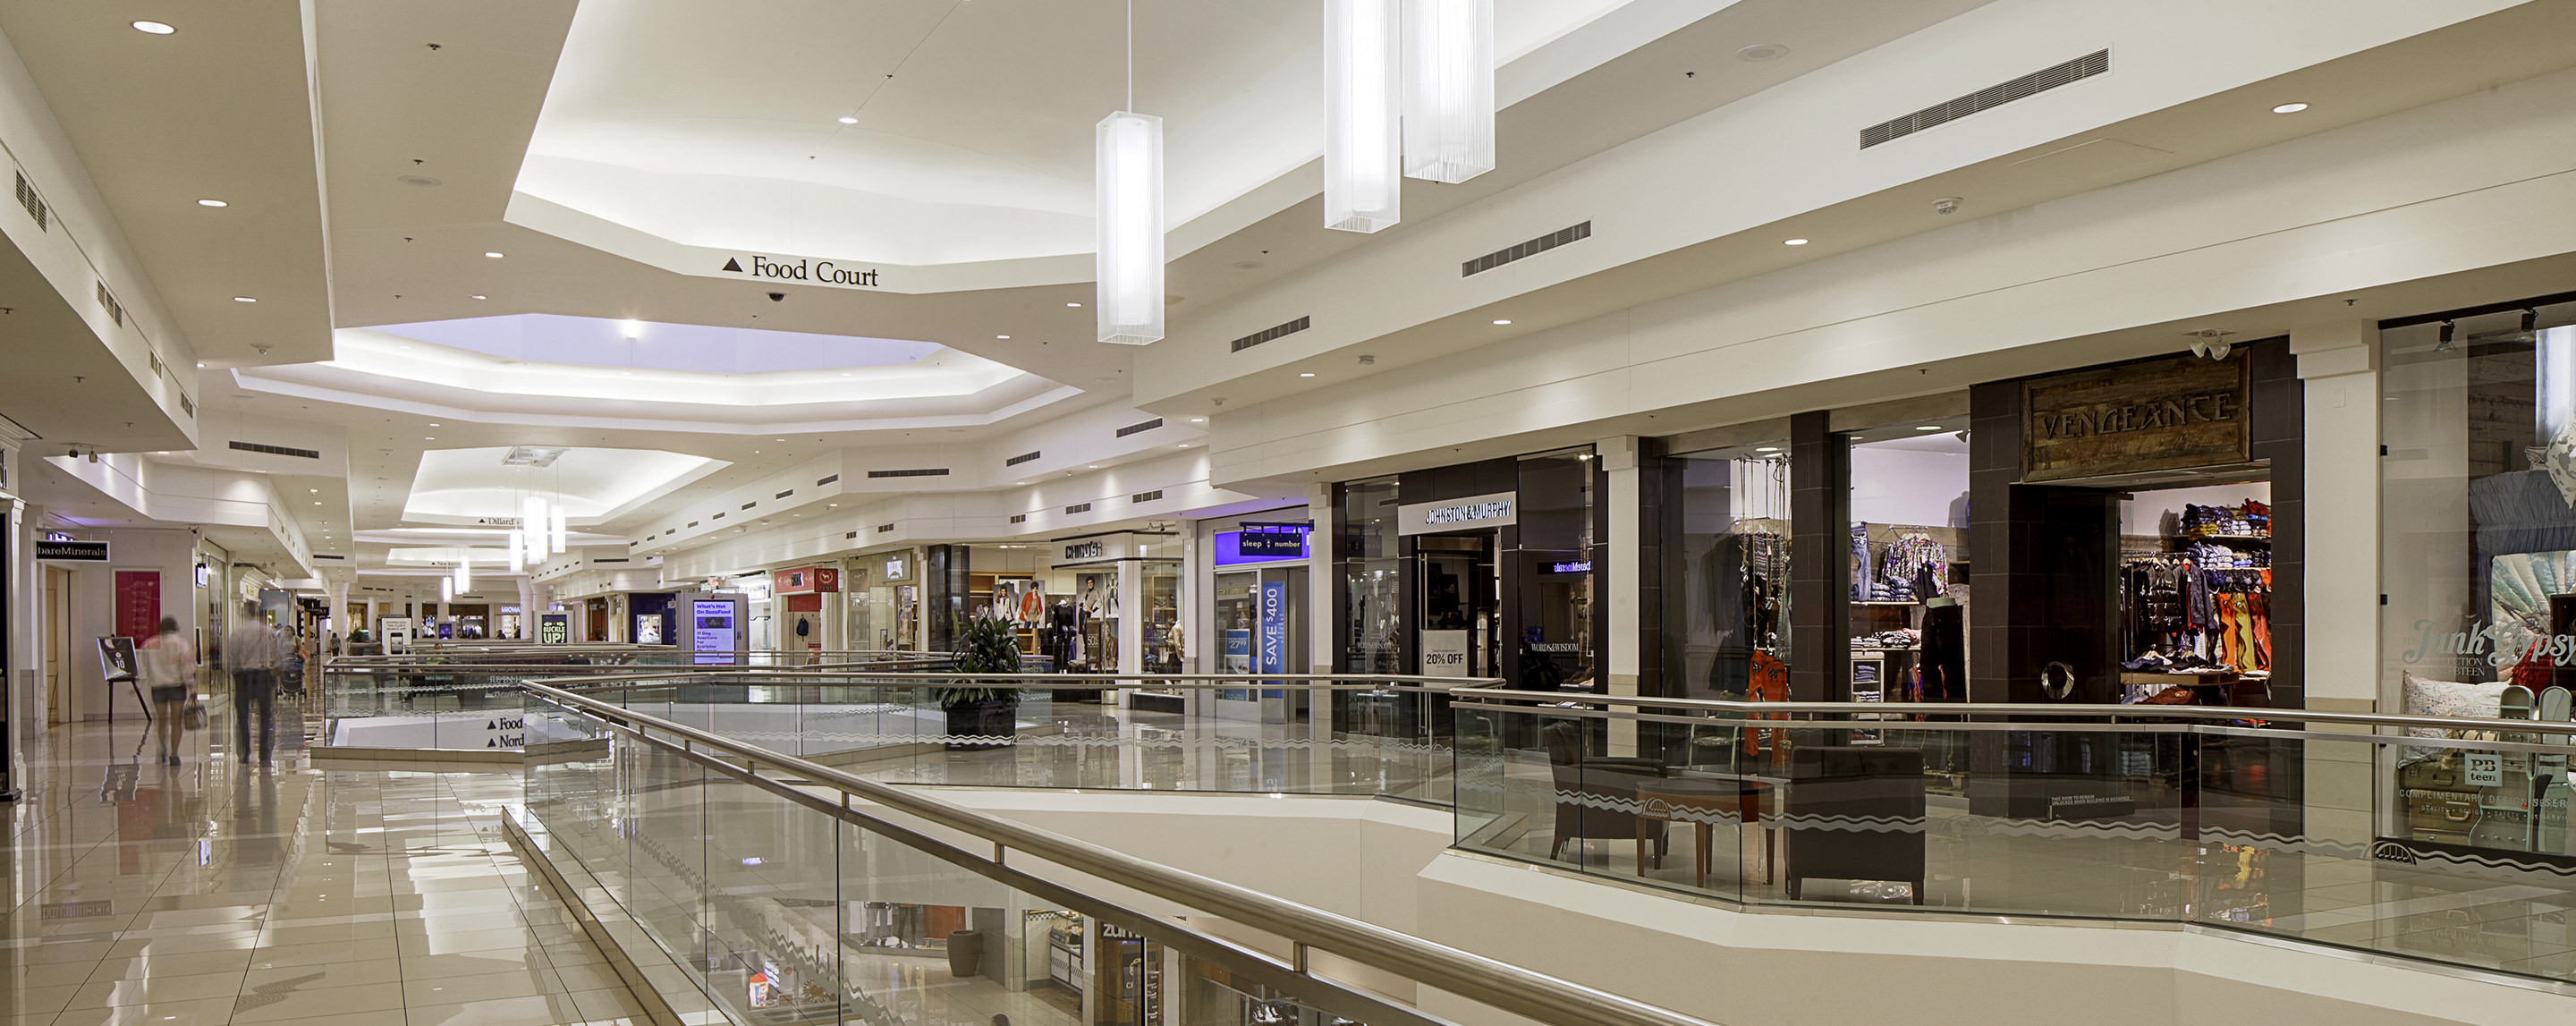 In an upper level interior walkway at Kenwood Town Center, store fronts line the hallways as a few shoppers walk by.